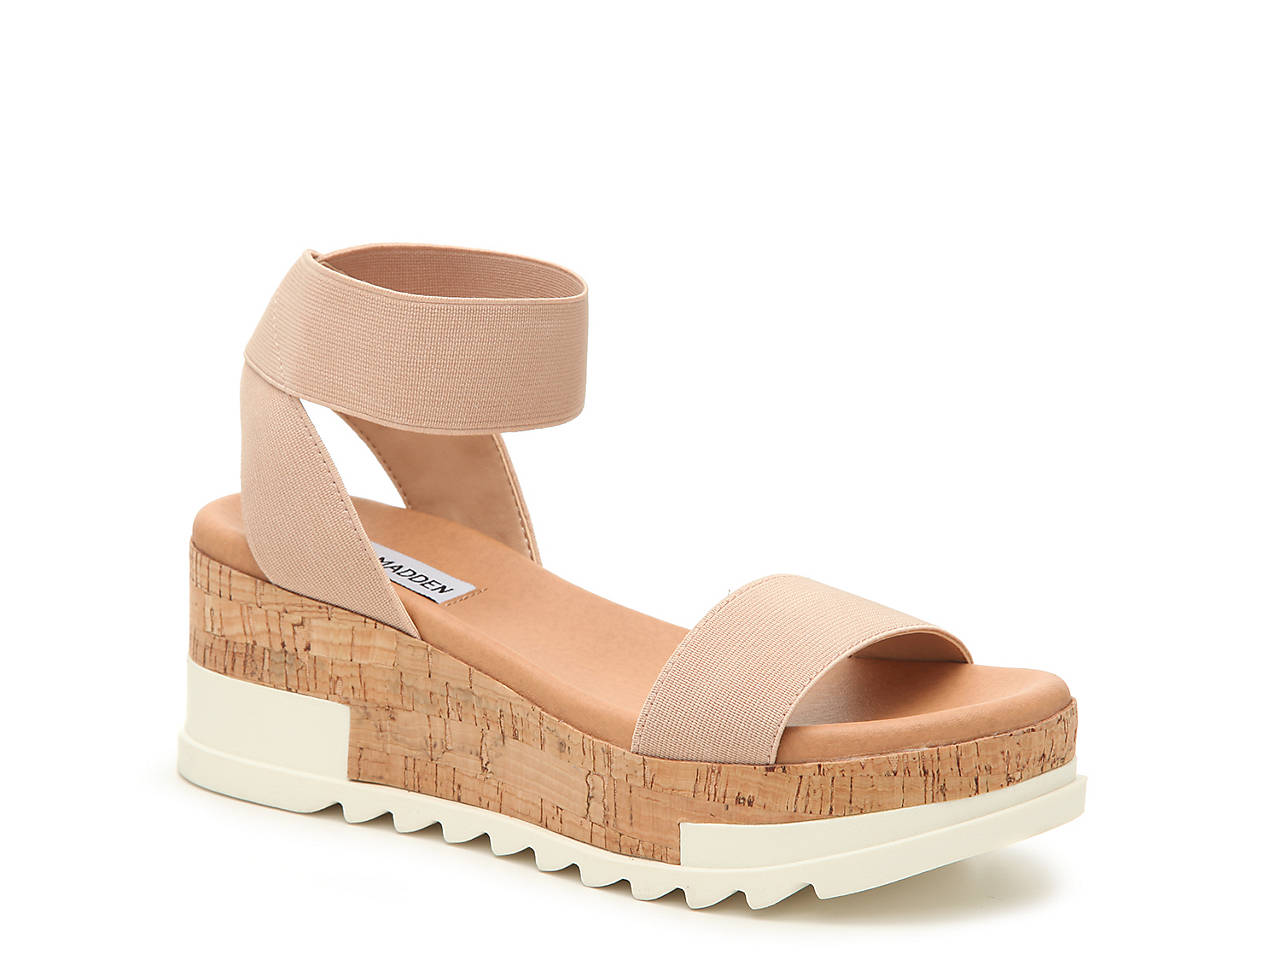 93627d6a16769 Steve Madden Elba Wedge Sandal Women's Shoes | DSW